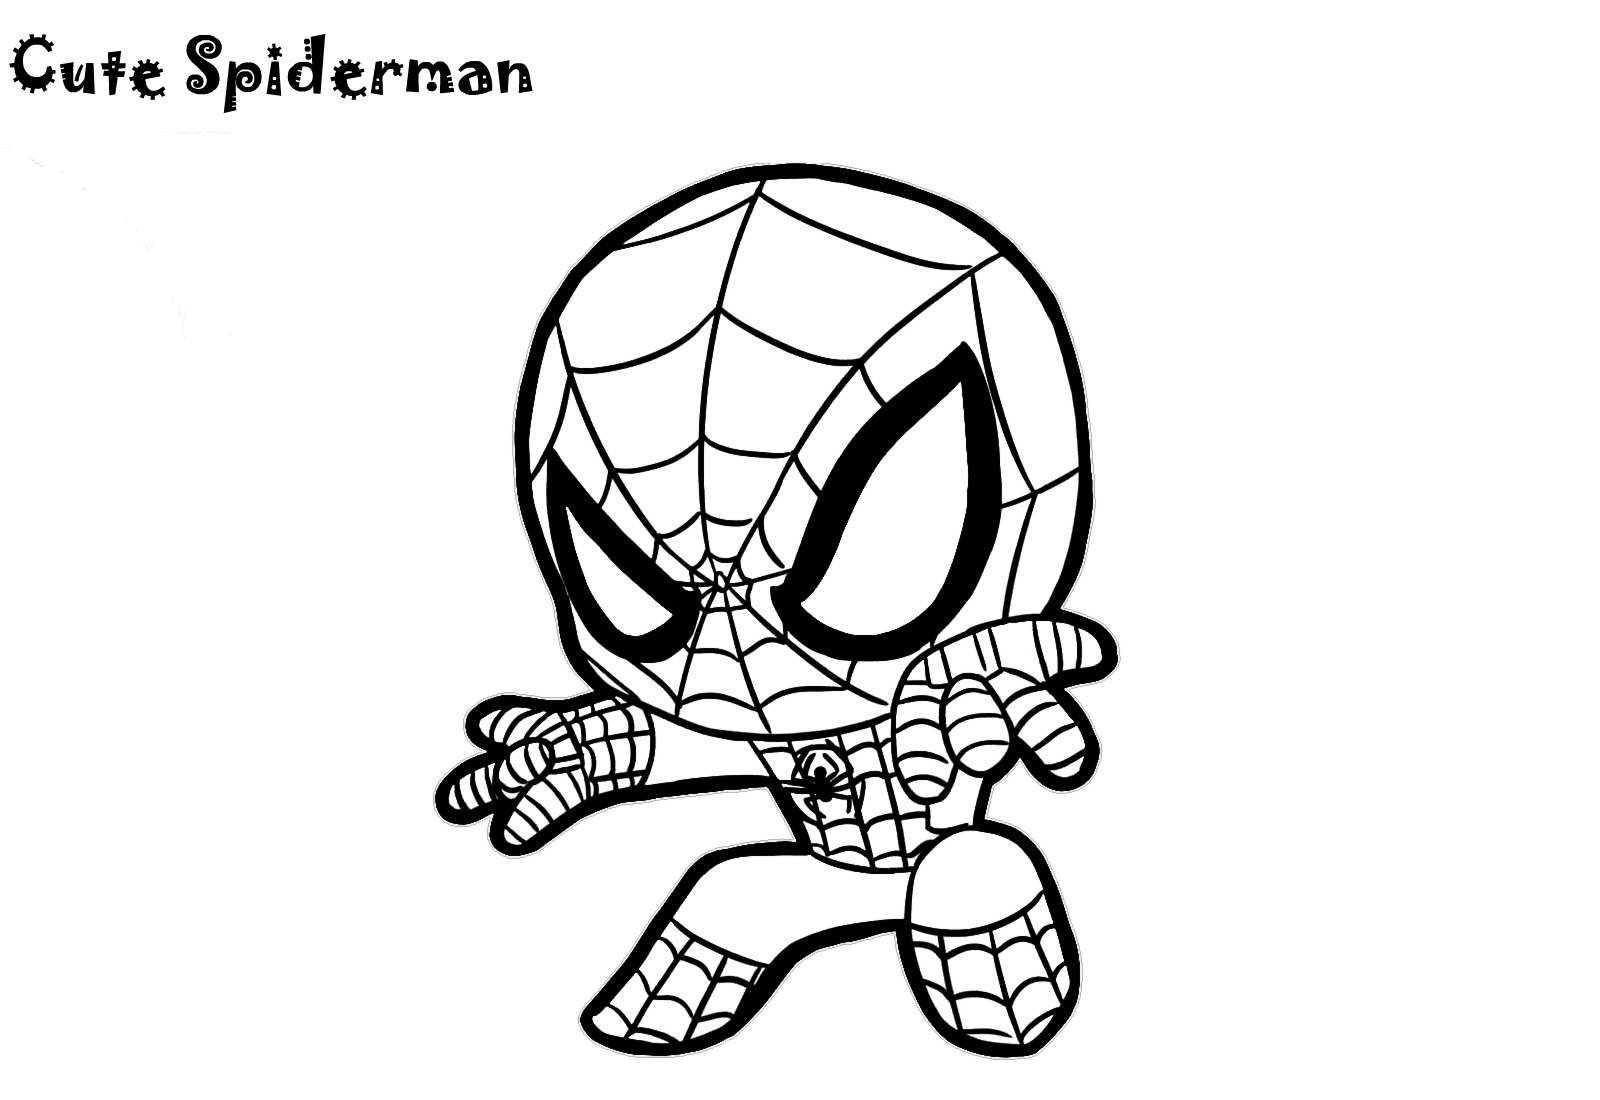 Google Image Result For Https Dumpdominion Org Wp Content Uploads 2020 01 Coloring Pictures Of Spider Spiderman Coloring Coloring Pages Batman Coloring Pages